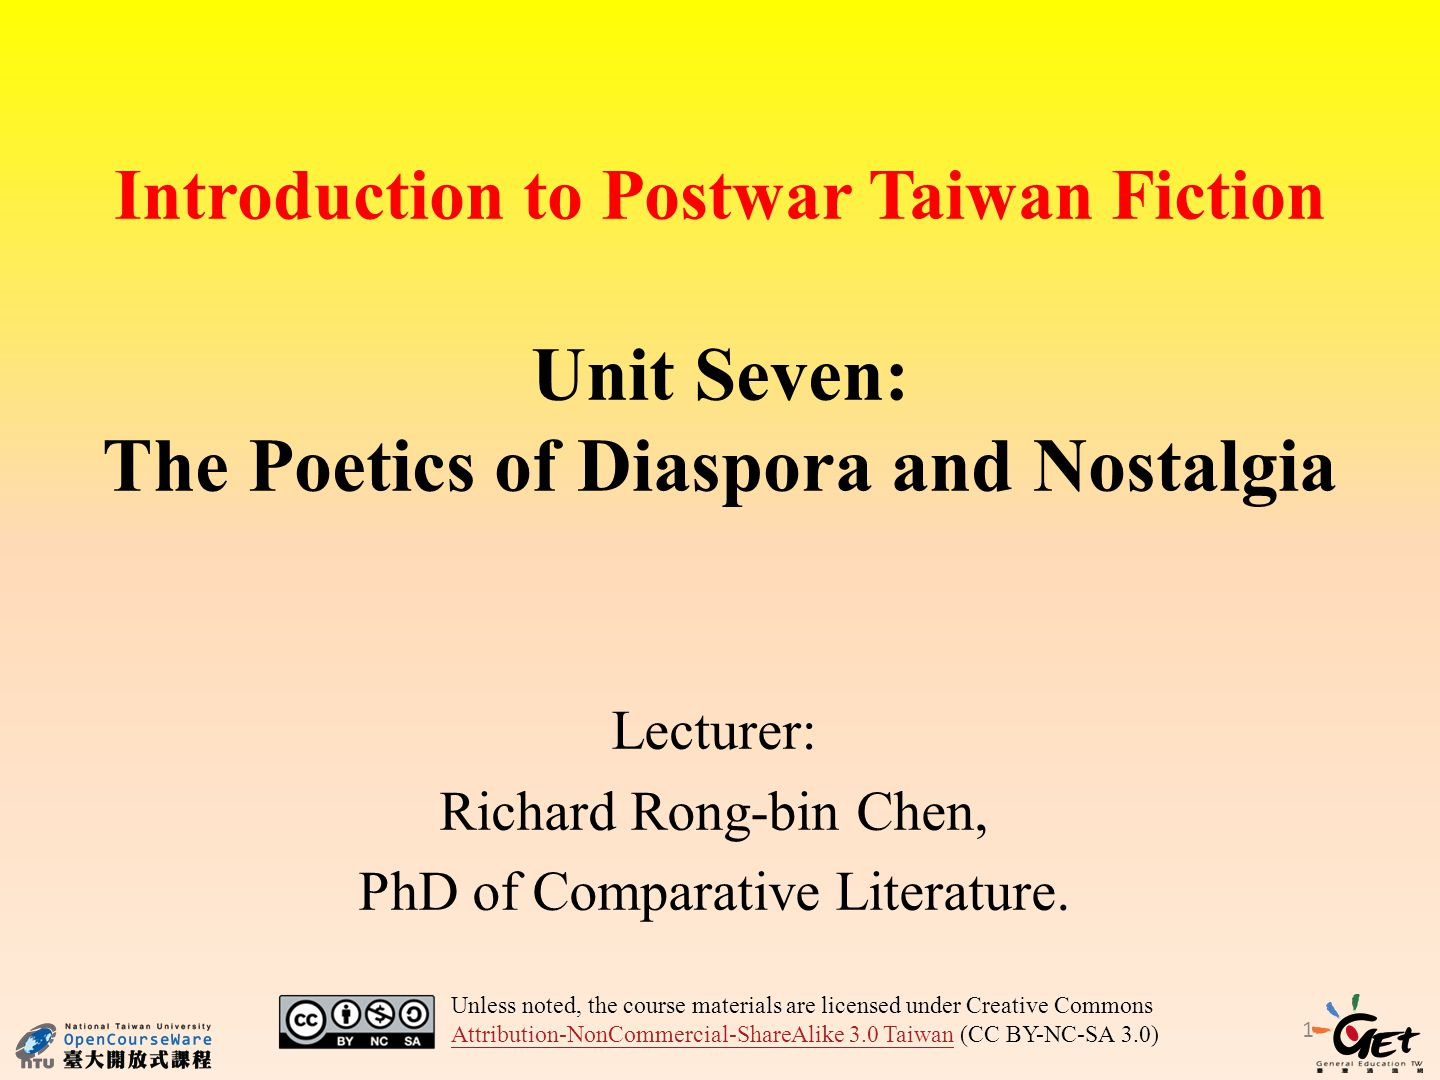 Introduction to Postwar Taiwan Fiction Unit Seven: The Poetics of Diaspora and Nostalgia Lecturer: Richard Rong-bin Chen, PhD of Comparative Literature.